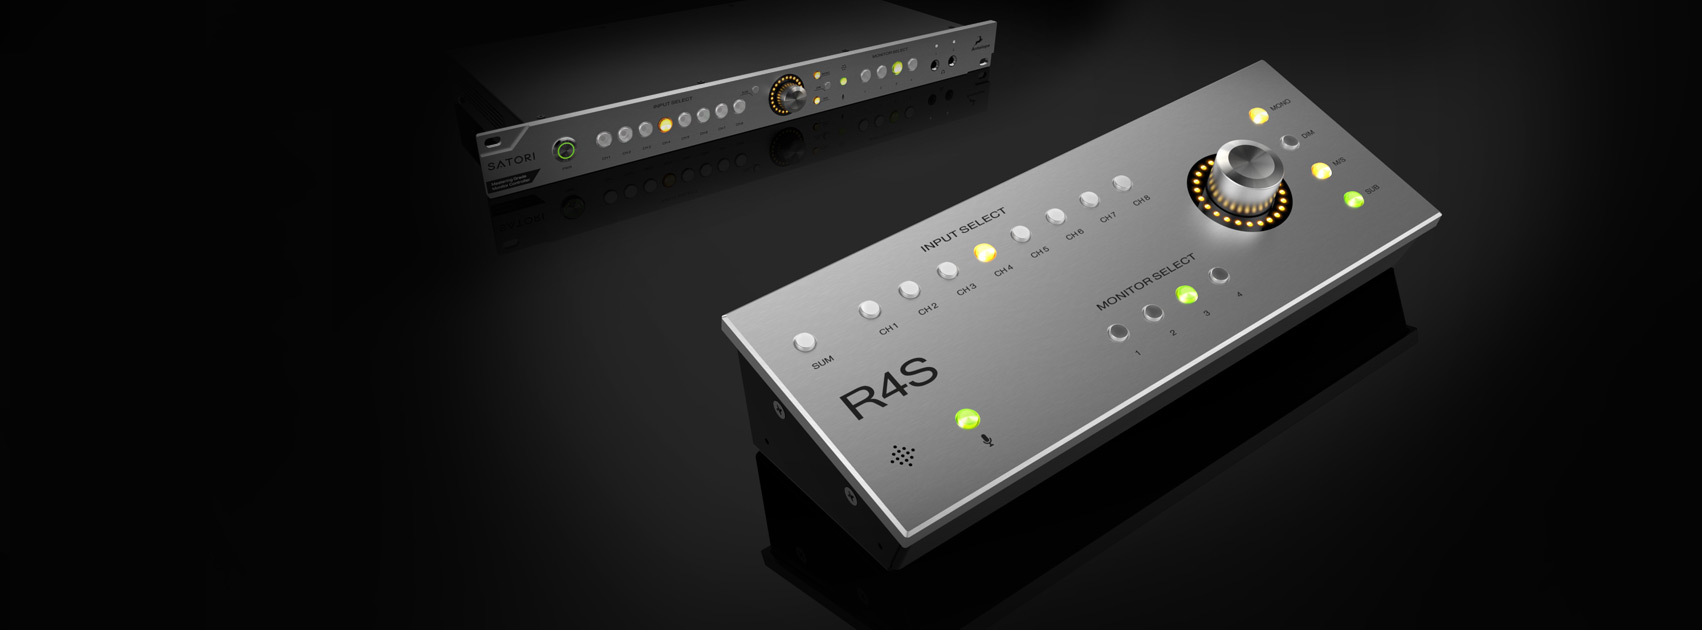 Antelope Audio Launches R4S Remote Control for Satori at Summer NAMM, Delivering Flexible Source and Monitor Switching in the Studio